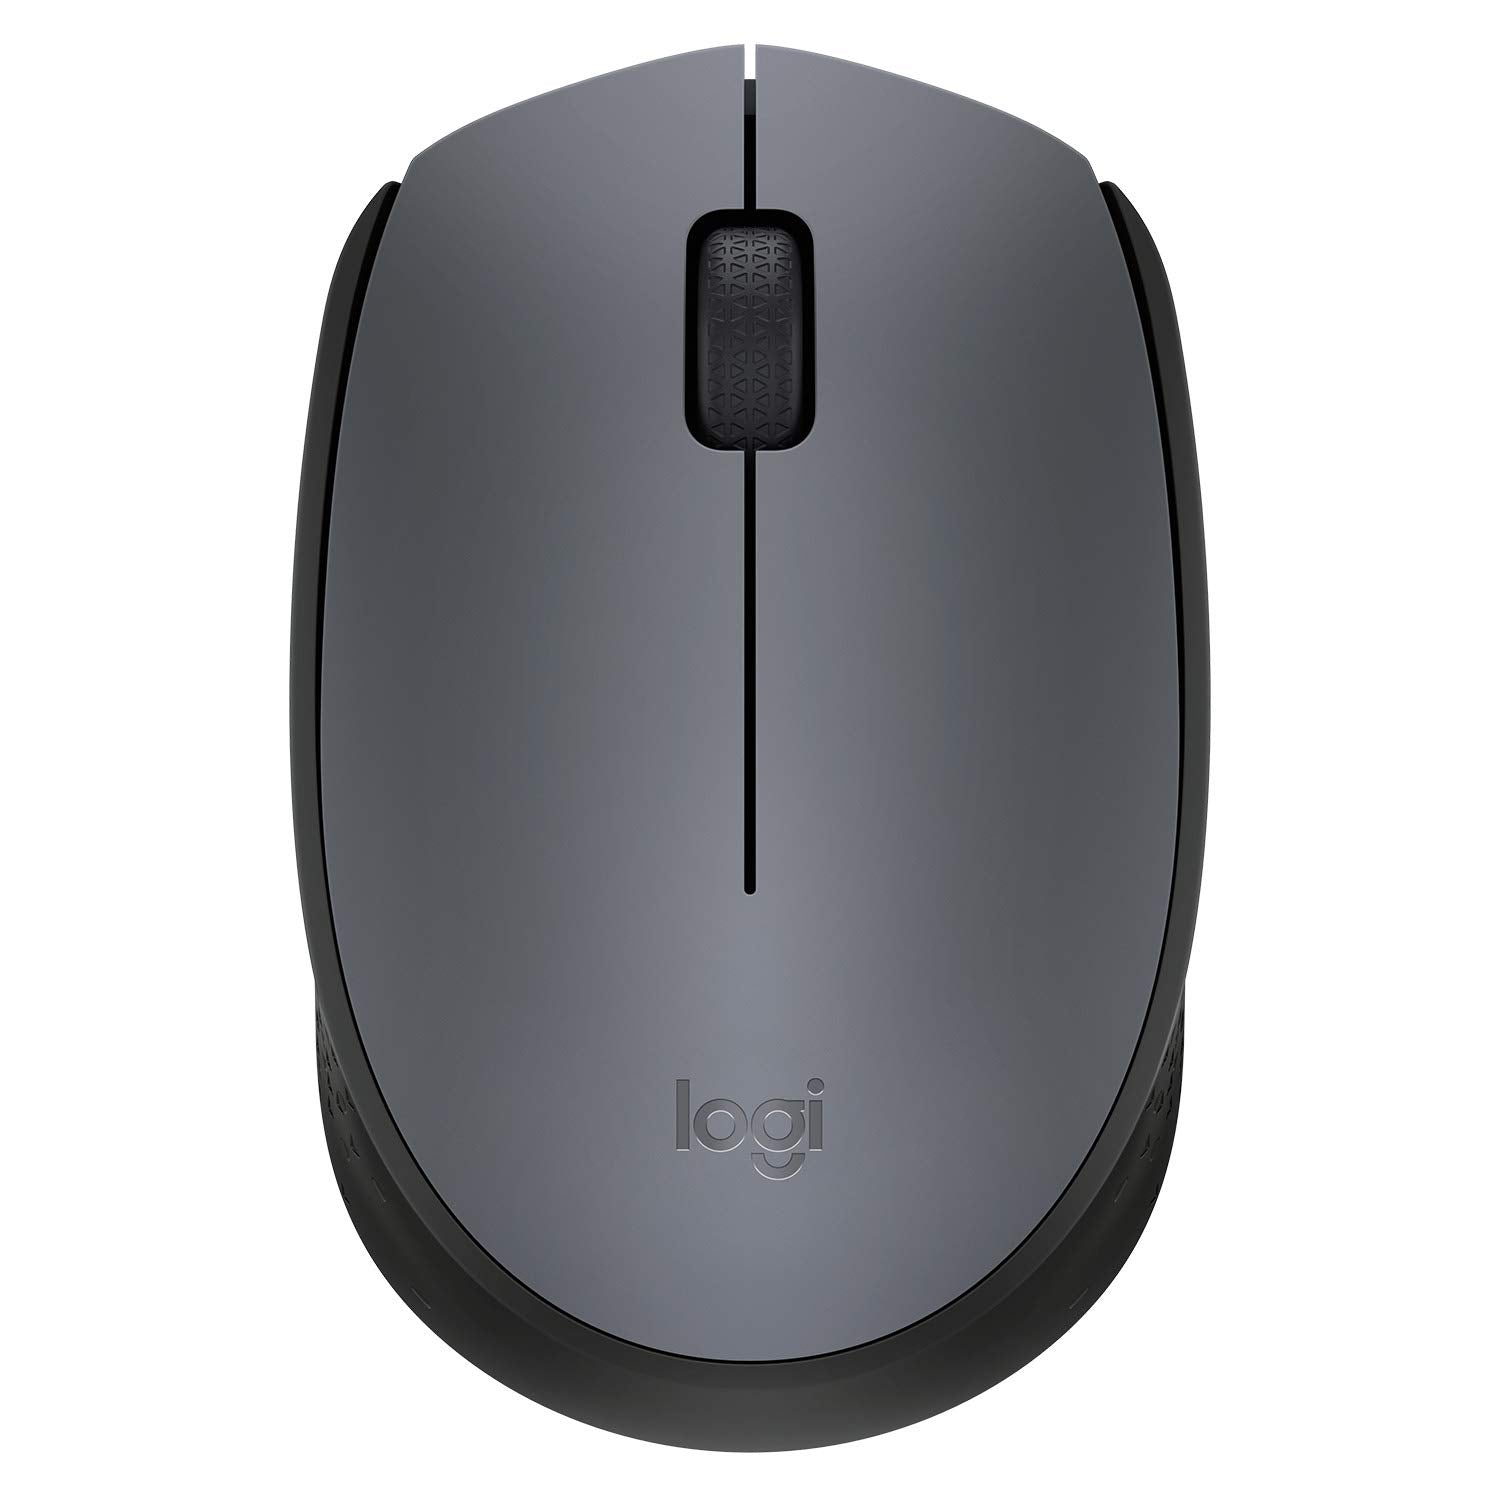 Logitech M171 Wireless Mouse 2.4Ghz - Grey,Black